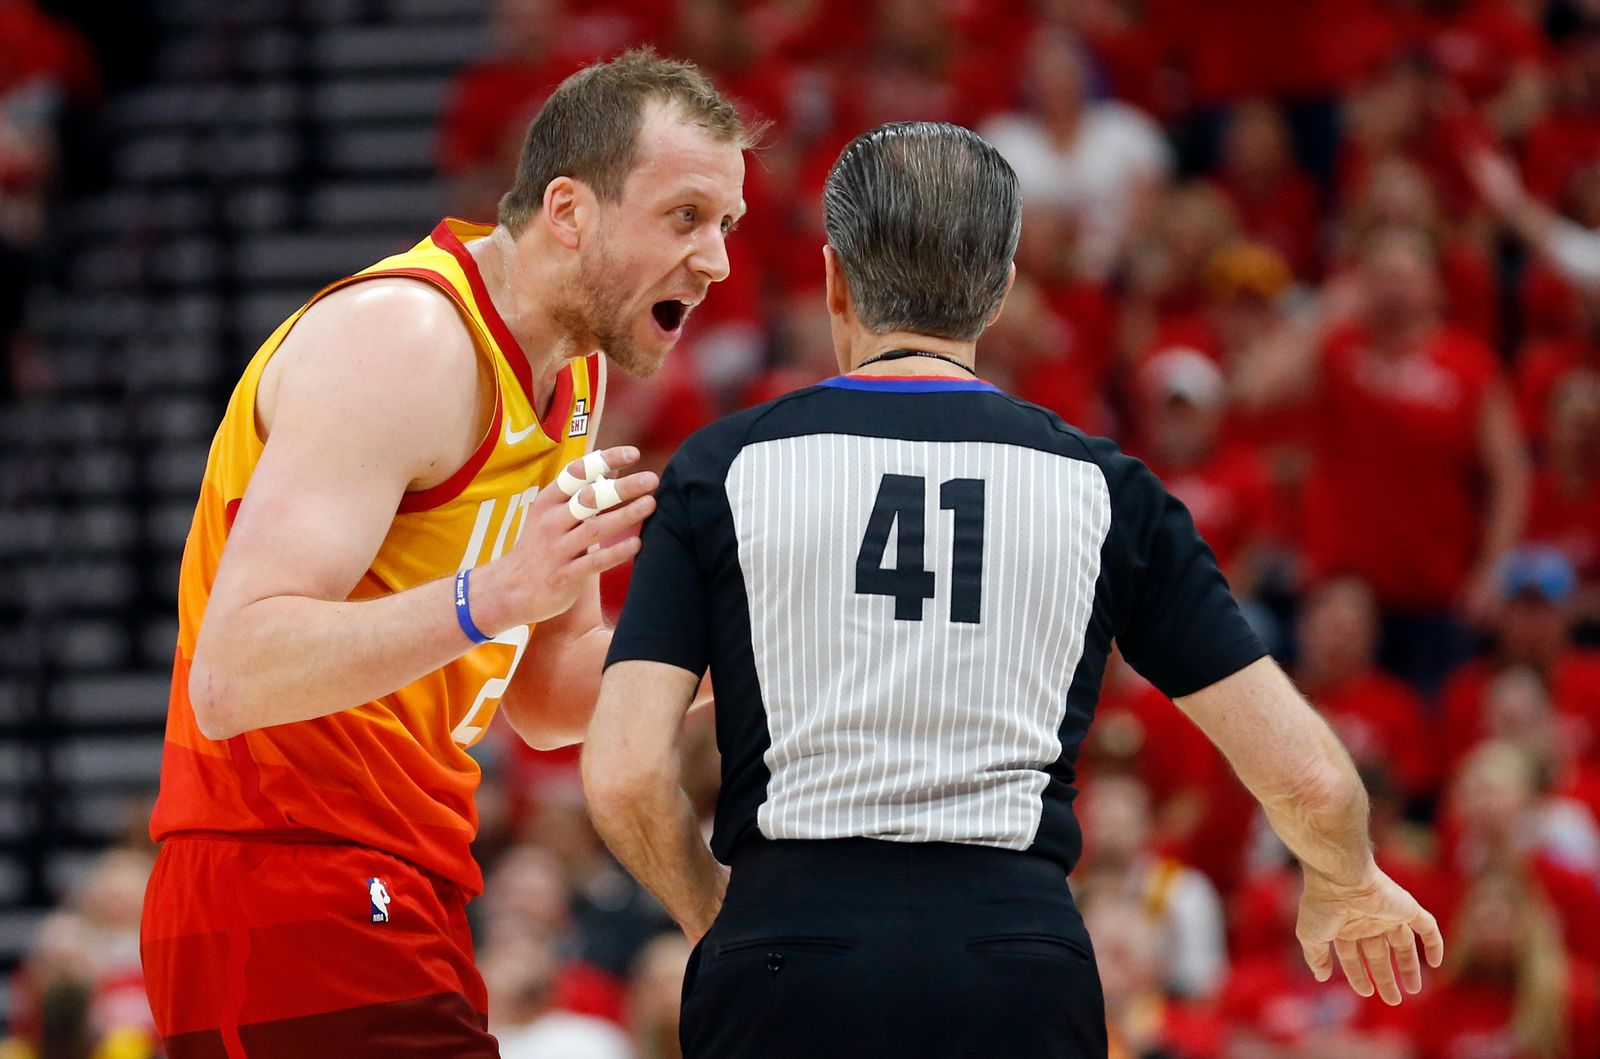 Utah Jazz forward Joe Ingles, left, argues with referee Ken Mauer (41) in the first half during an NBA basketball game against the Houston Rockets Saturday, April 20, 2019, in Salt Lake City. (AP Photo/Rick Bowmer)